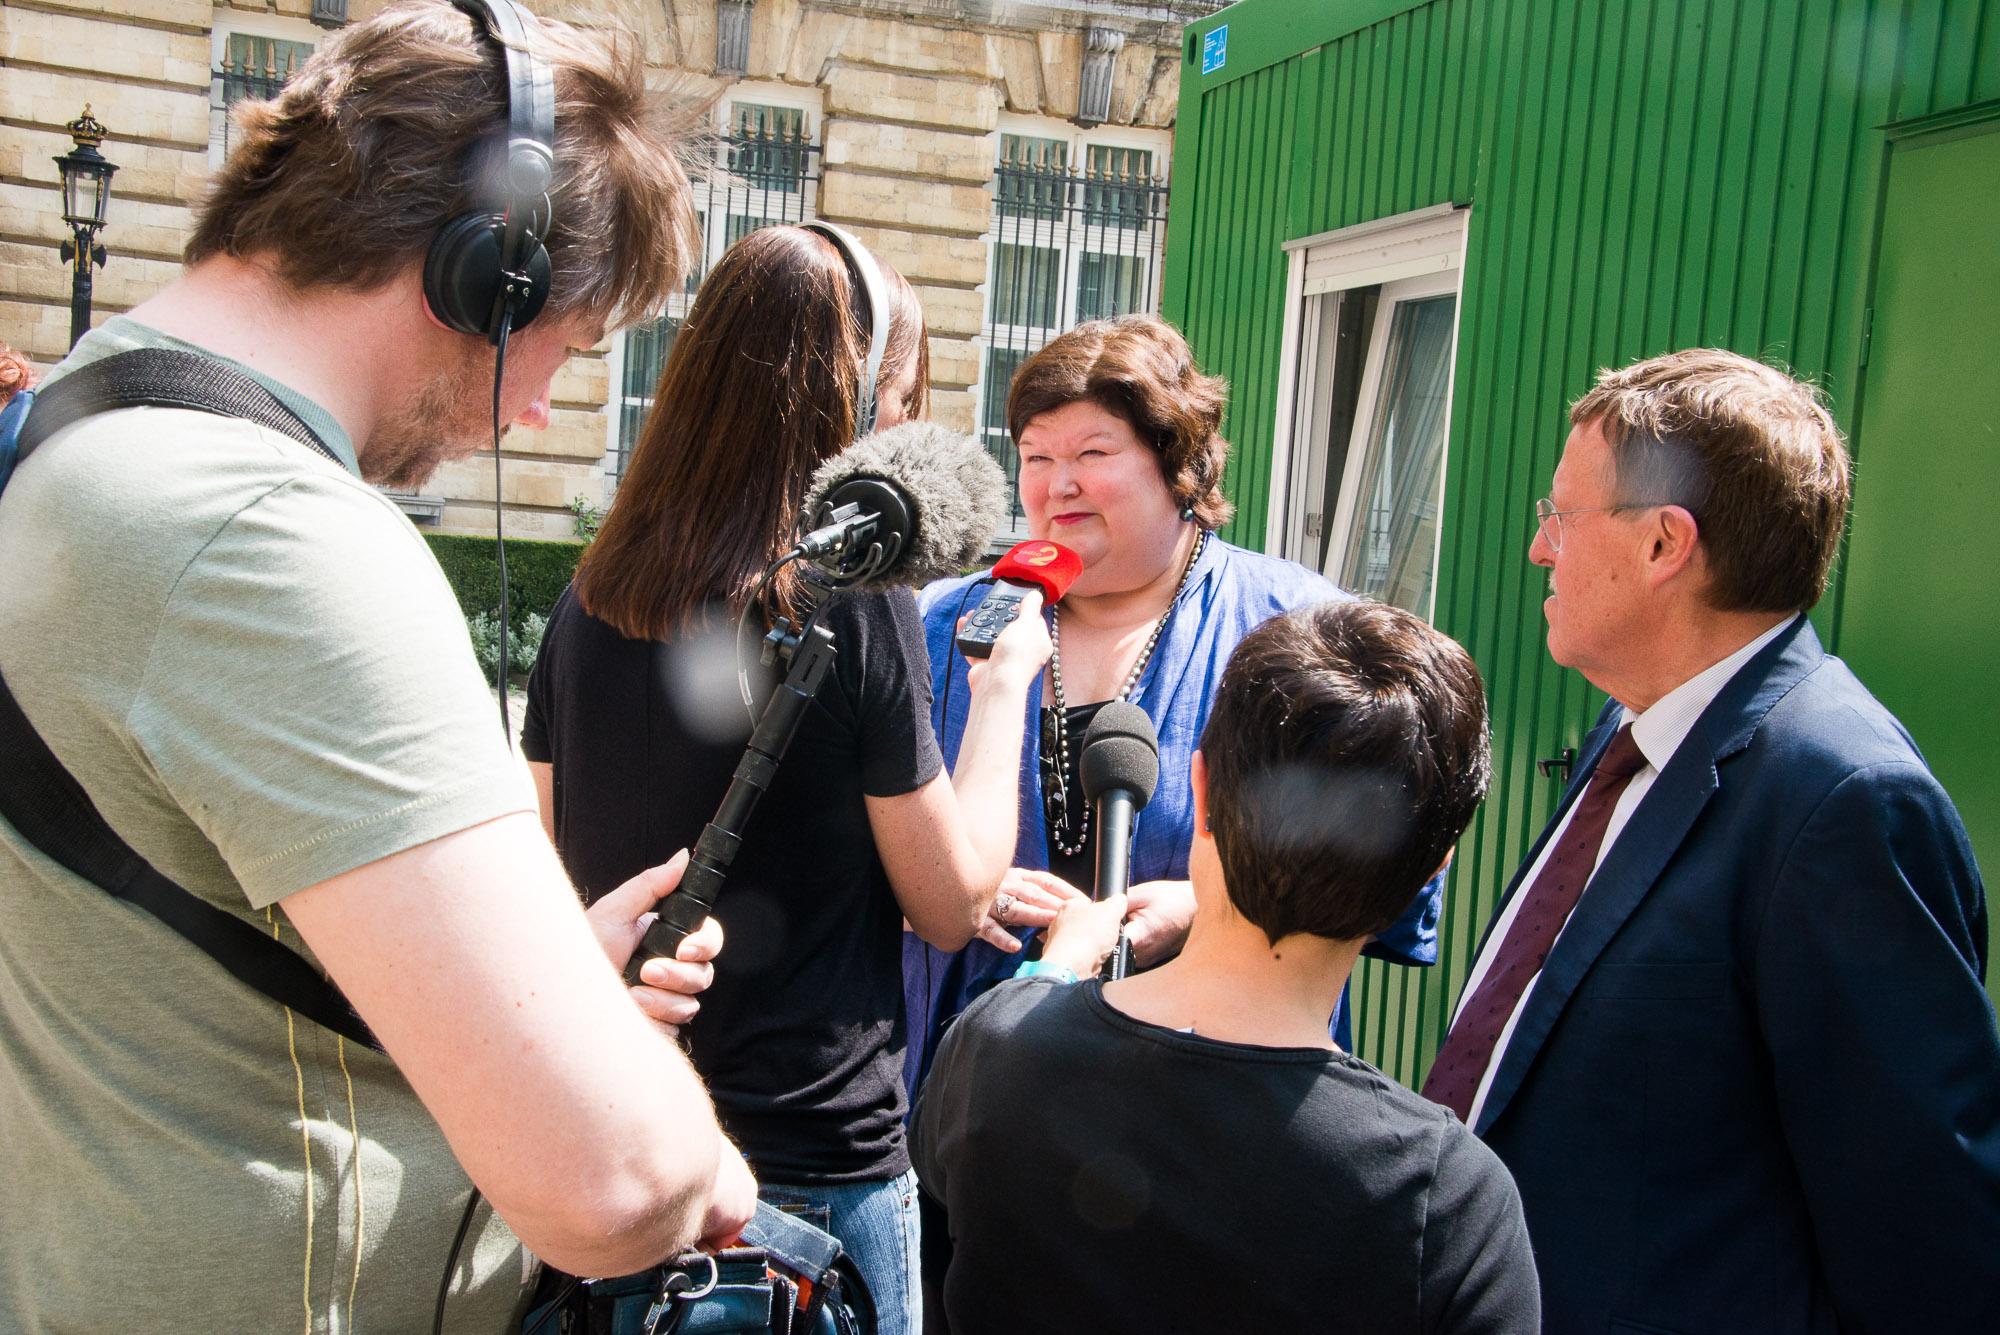 [Image: Belgian Minister and MPs touched by women's stories in the African pop-up family planning clinic]